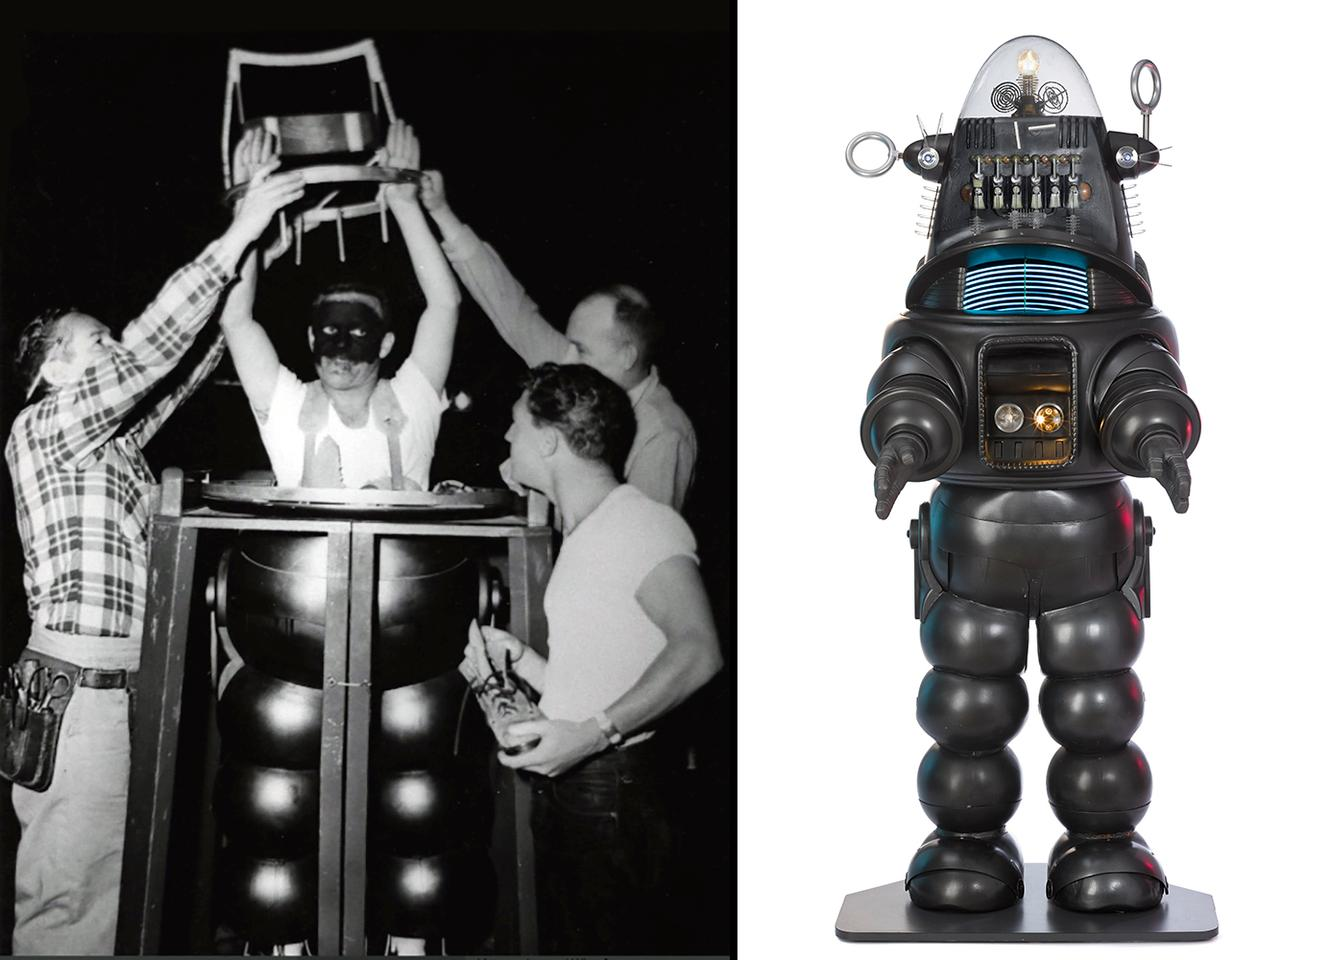 Robby the Robot may have first appeared in the 1956 movie Forbidden Planet, but his film and TV appearances number more than 30, including movies such as The Invisible Boy,Phantom Empire and Gremlins, and his TV show appearances included episodes of My Little Margie, The Thin Man, Columbo, The Addams Family, Lost in Space, The Twilight Zone, The Man from U.N.C.L.E., Mork & Mindy, Project U.F.O. and Ark II.